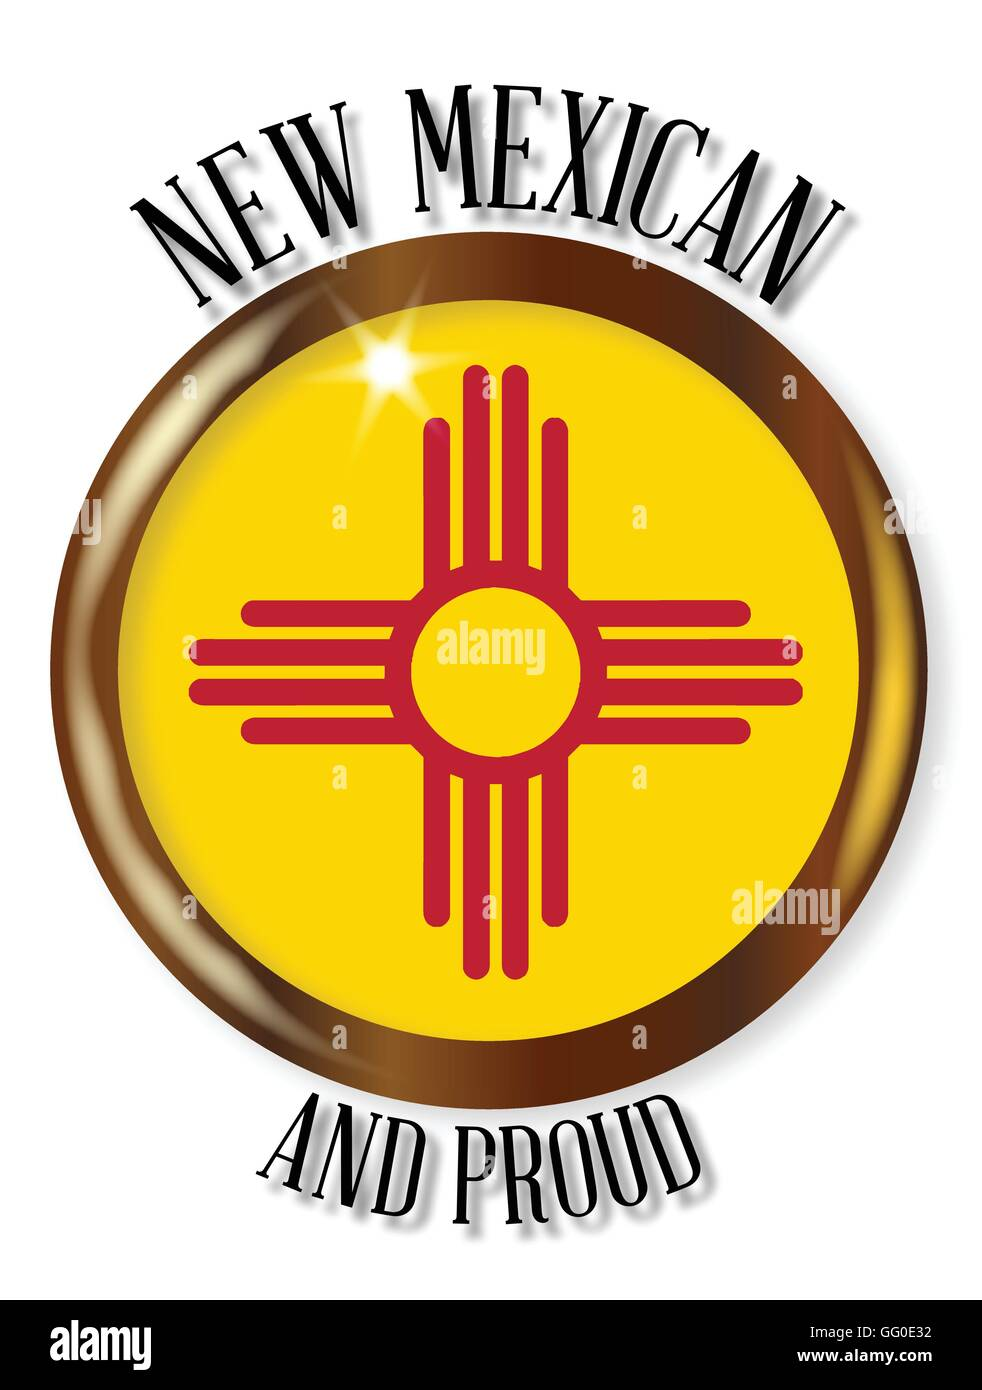 New mexico state flag button with a gold metal circular border new mexico state flag button with a gold metal circular border over a white background with the text new mexican and proud buycottarizona